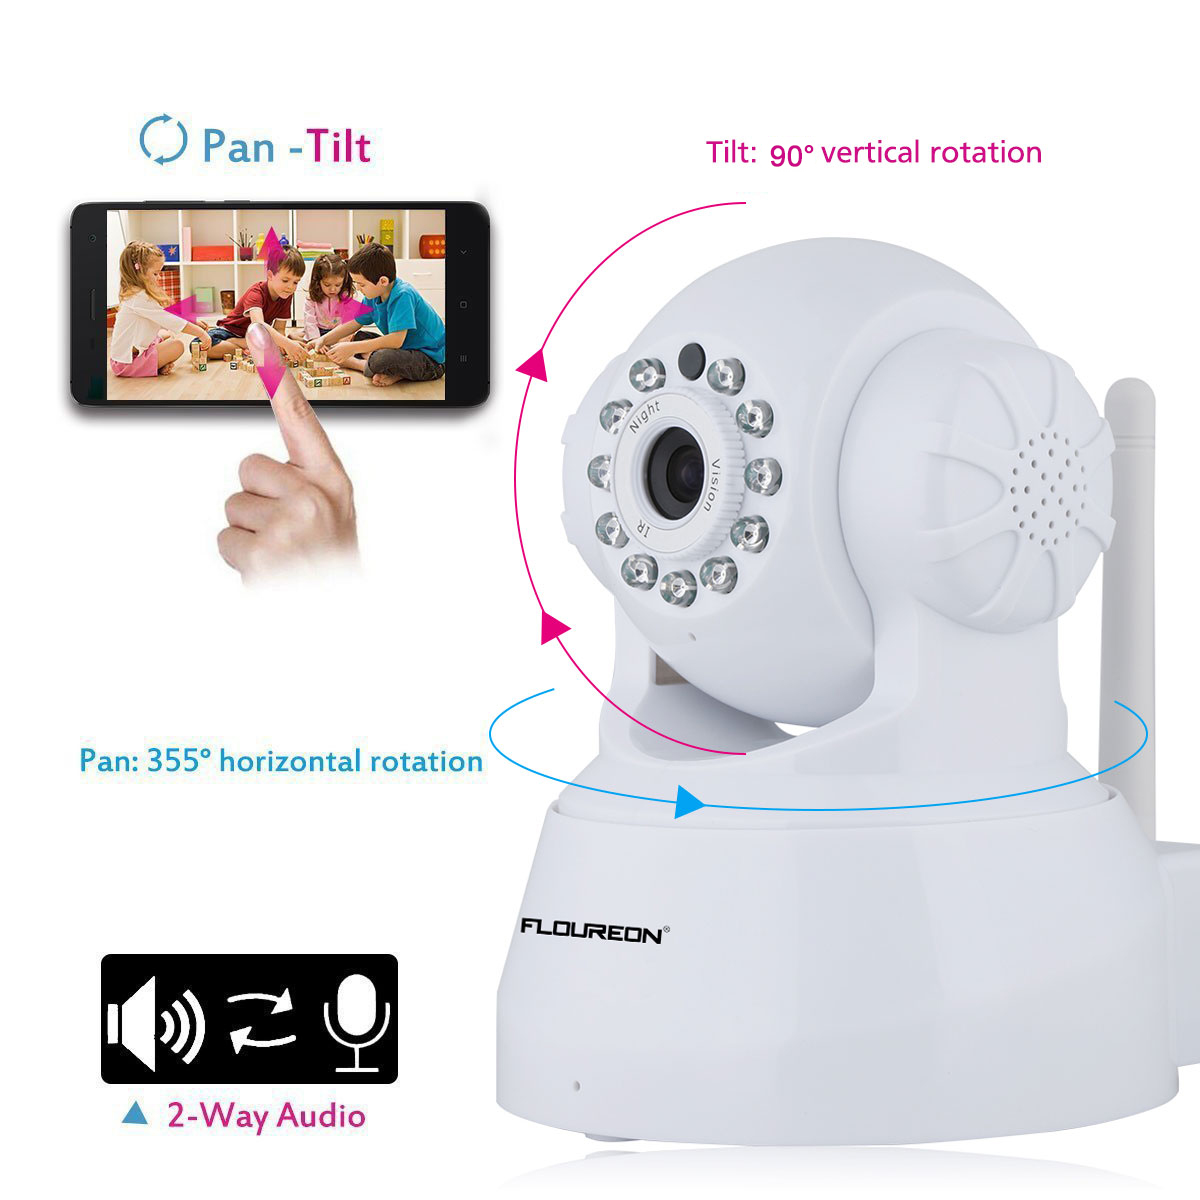 FLOUREON 720P Wifi Megapixel H.264 Wireless PT CCTV Security IP Camera White US